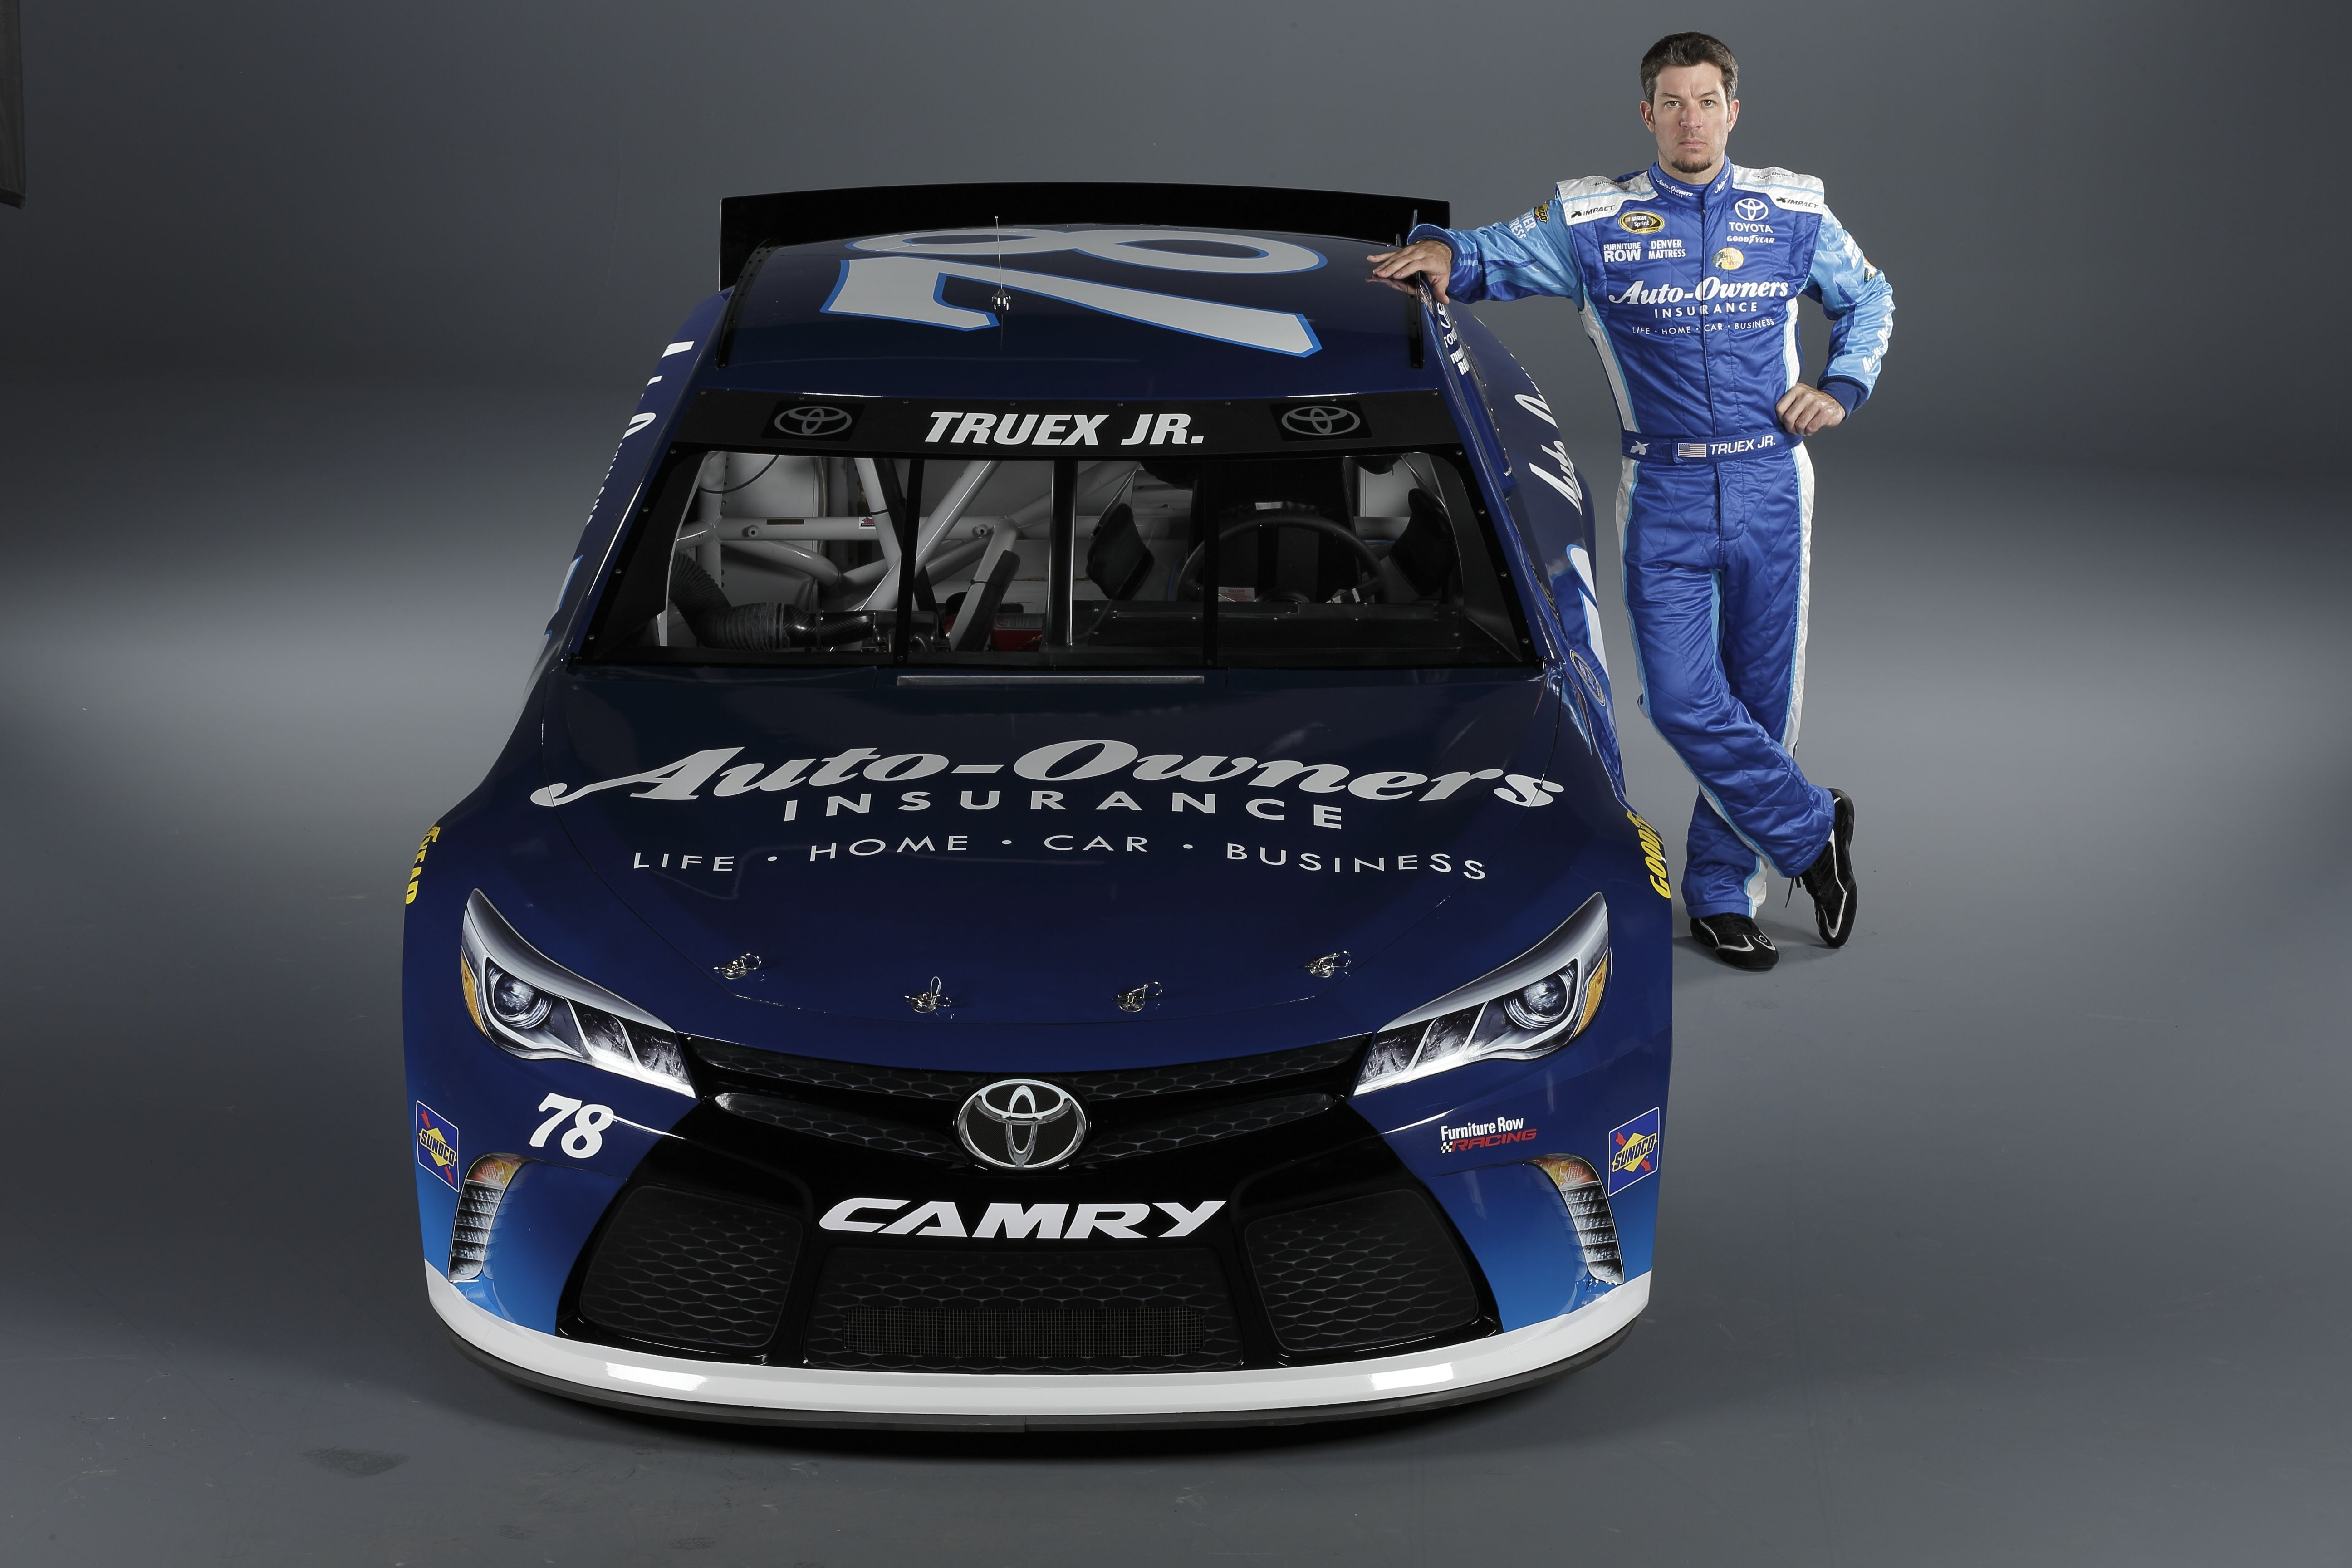 Photo shoot with 78 Martin Truex Jr. and the AutoOwners